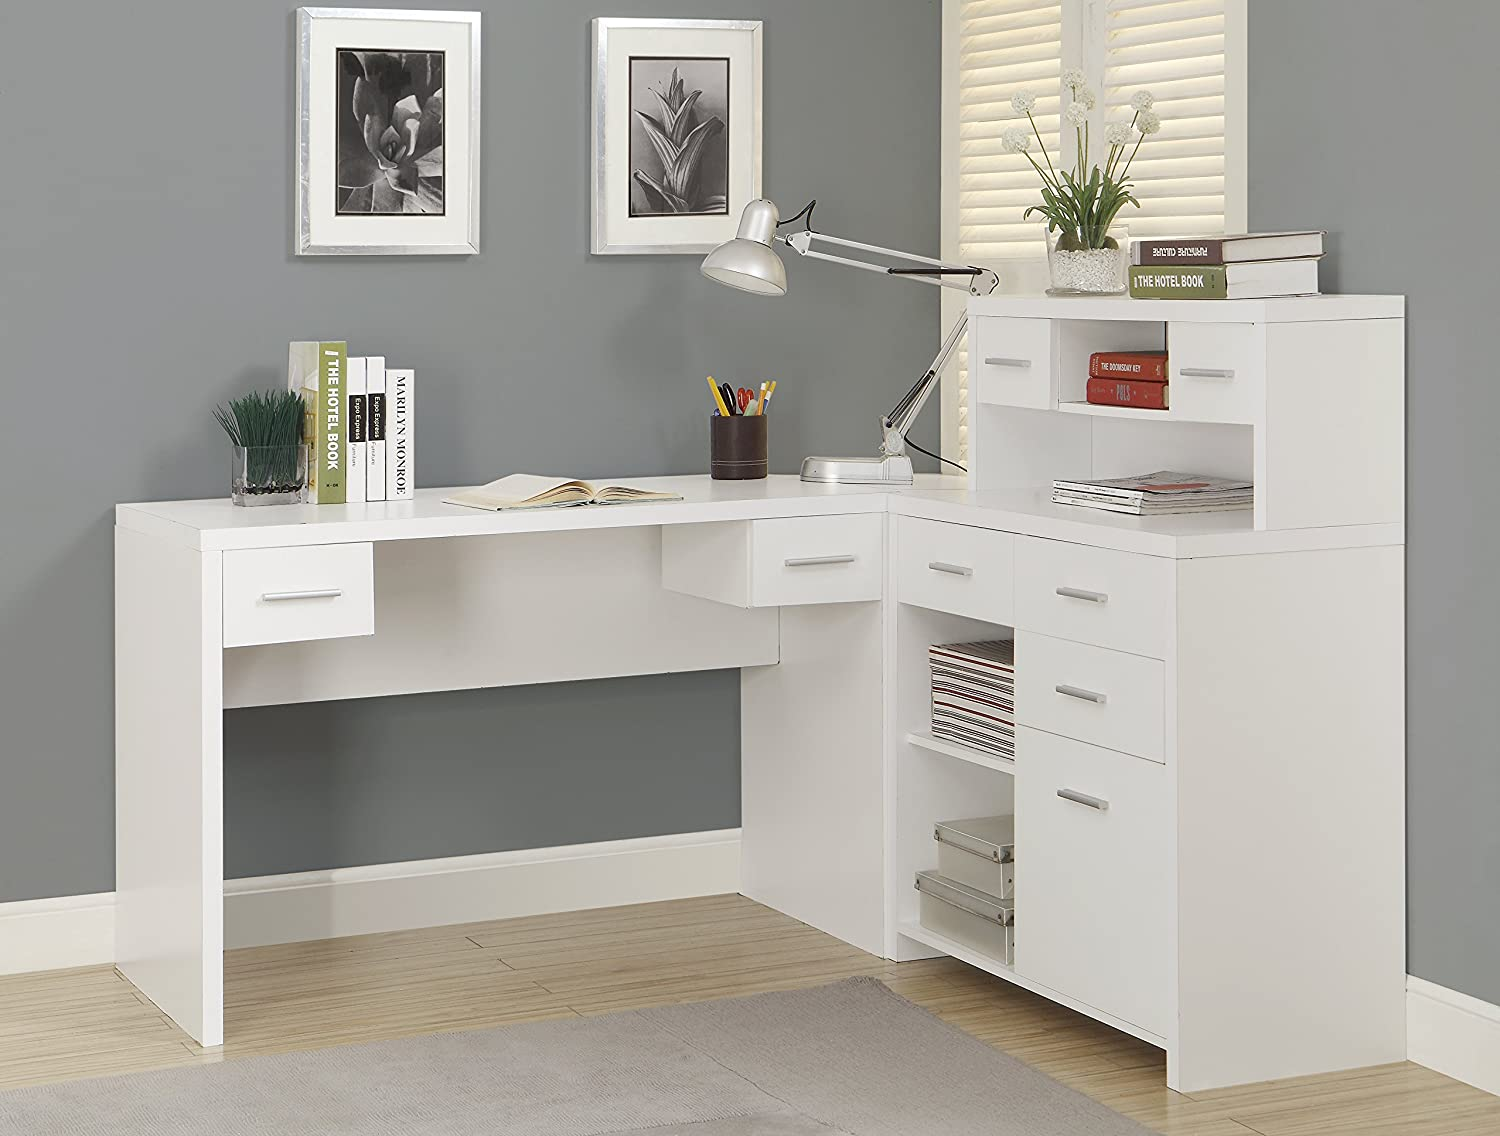 Monarch hollow core l shaped home office desk white amazon monarch hollow core l shaped home office desk white kitchen dining solutioingenieria Gallery